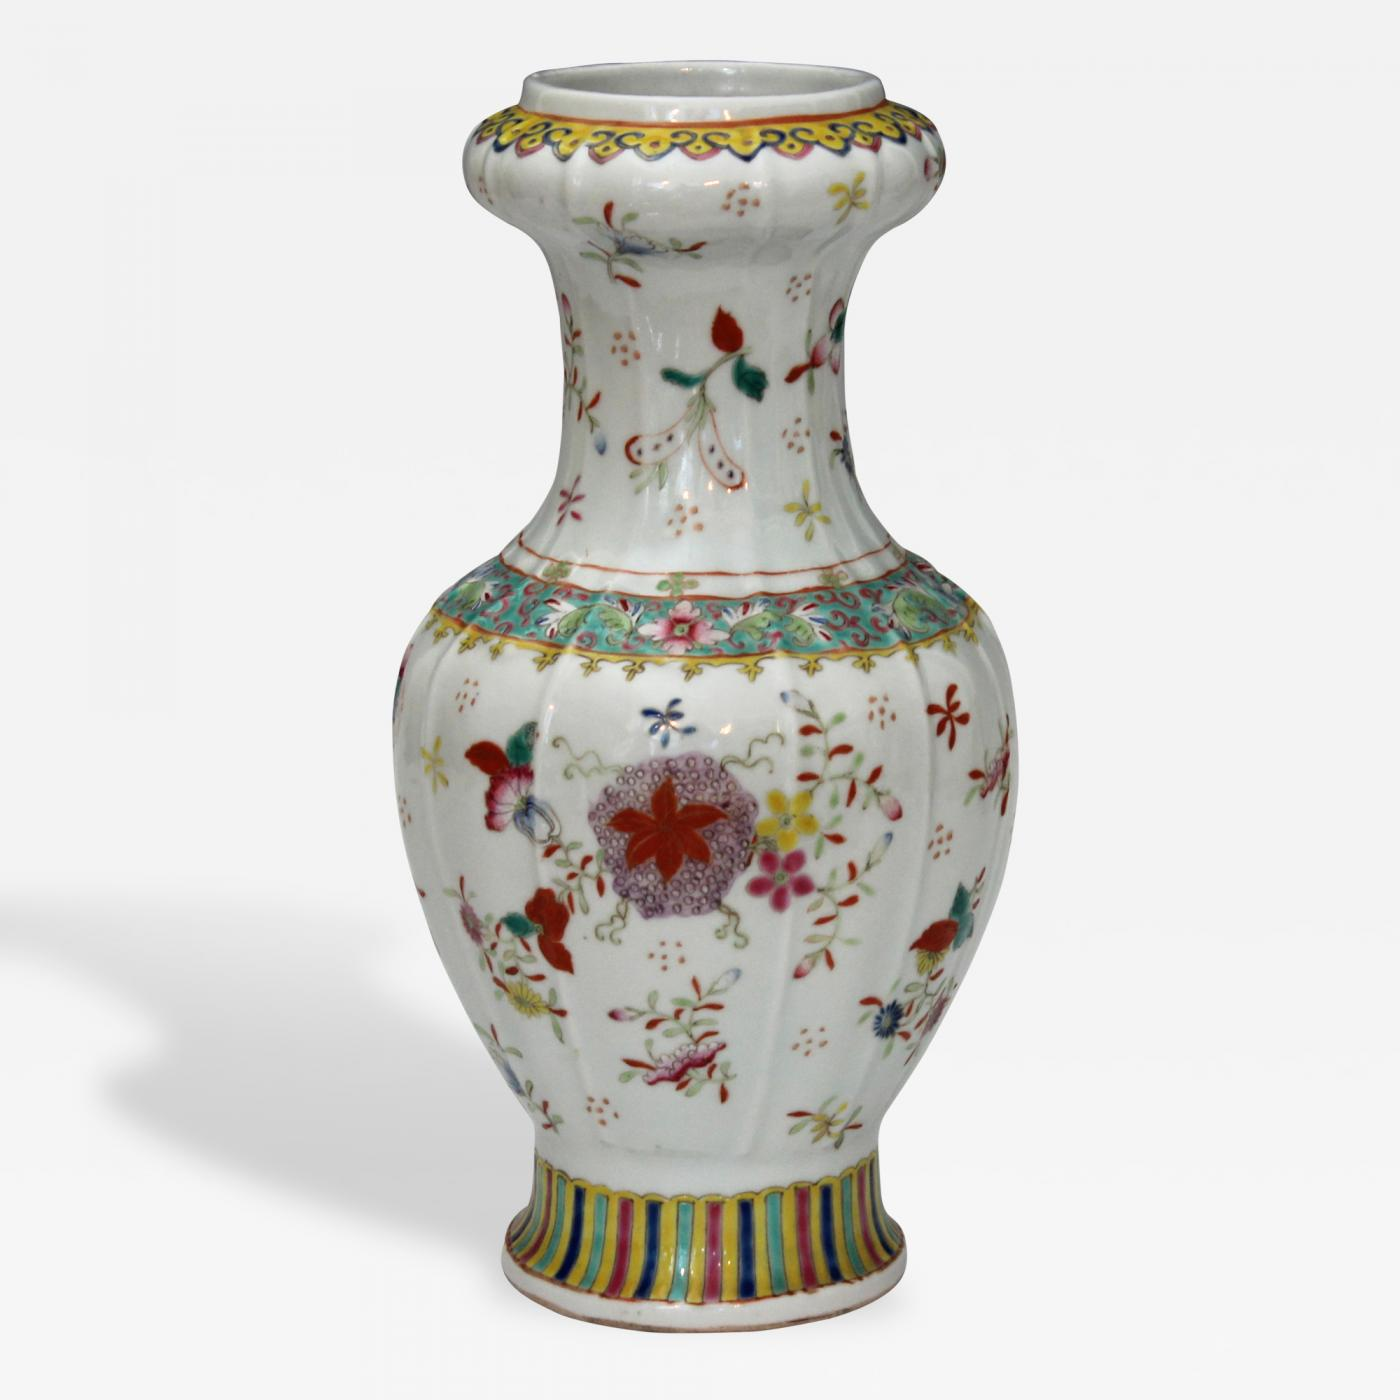 Chinese porcelain antique chinese famille rose porcelain lobed listings decorative arts objects vases jars urns chinese porcelain antique chinese famille rose reviewsmspy